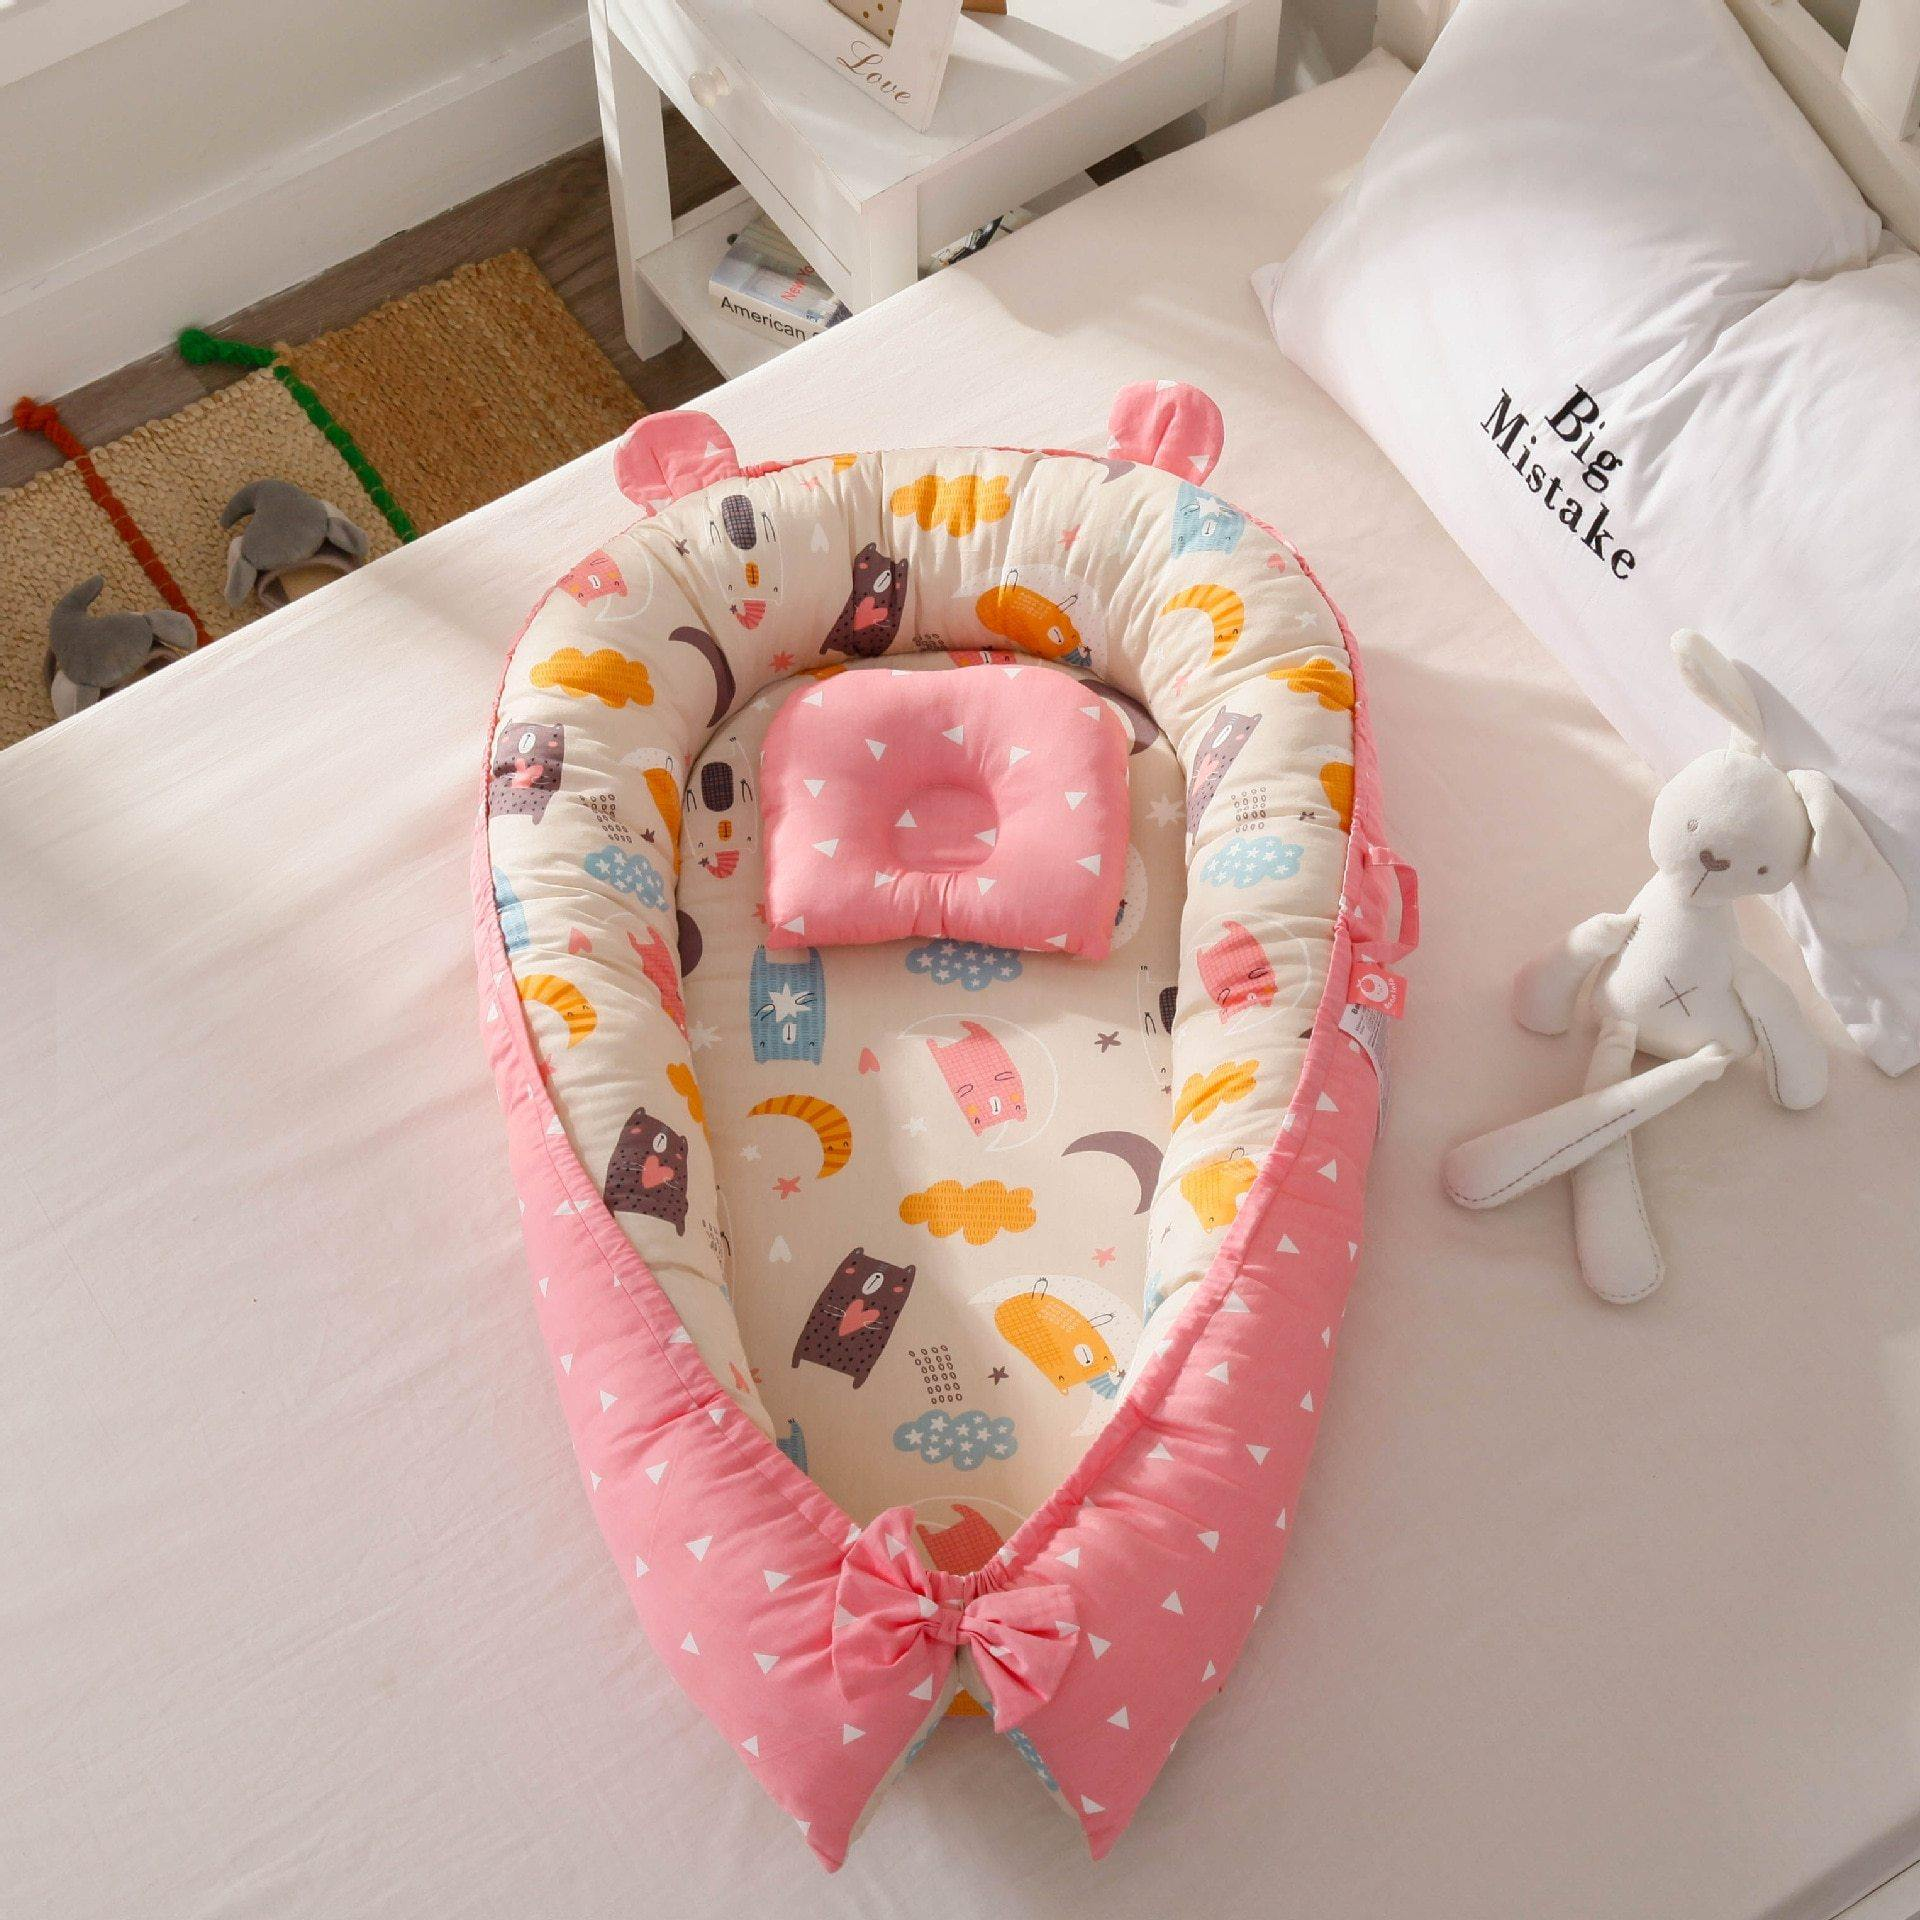 Portable Baby Bed With Pillow (85*50cm) - MonkeyPiggy